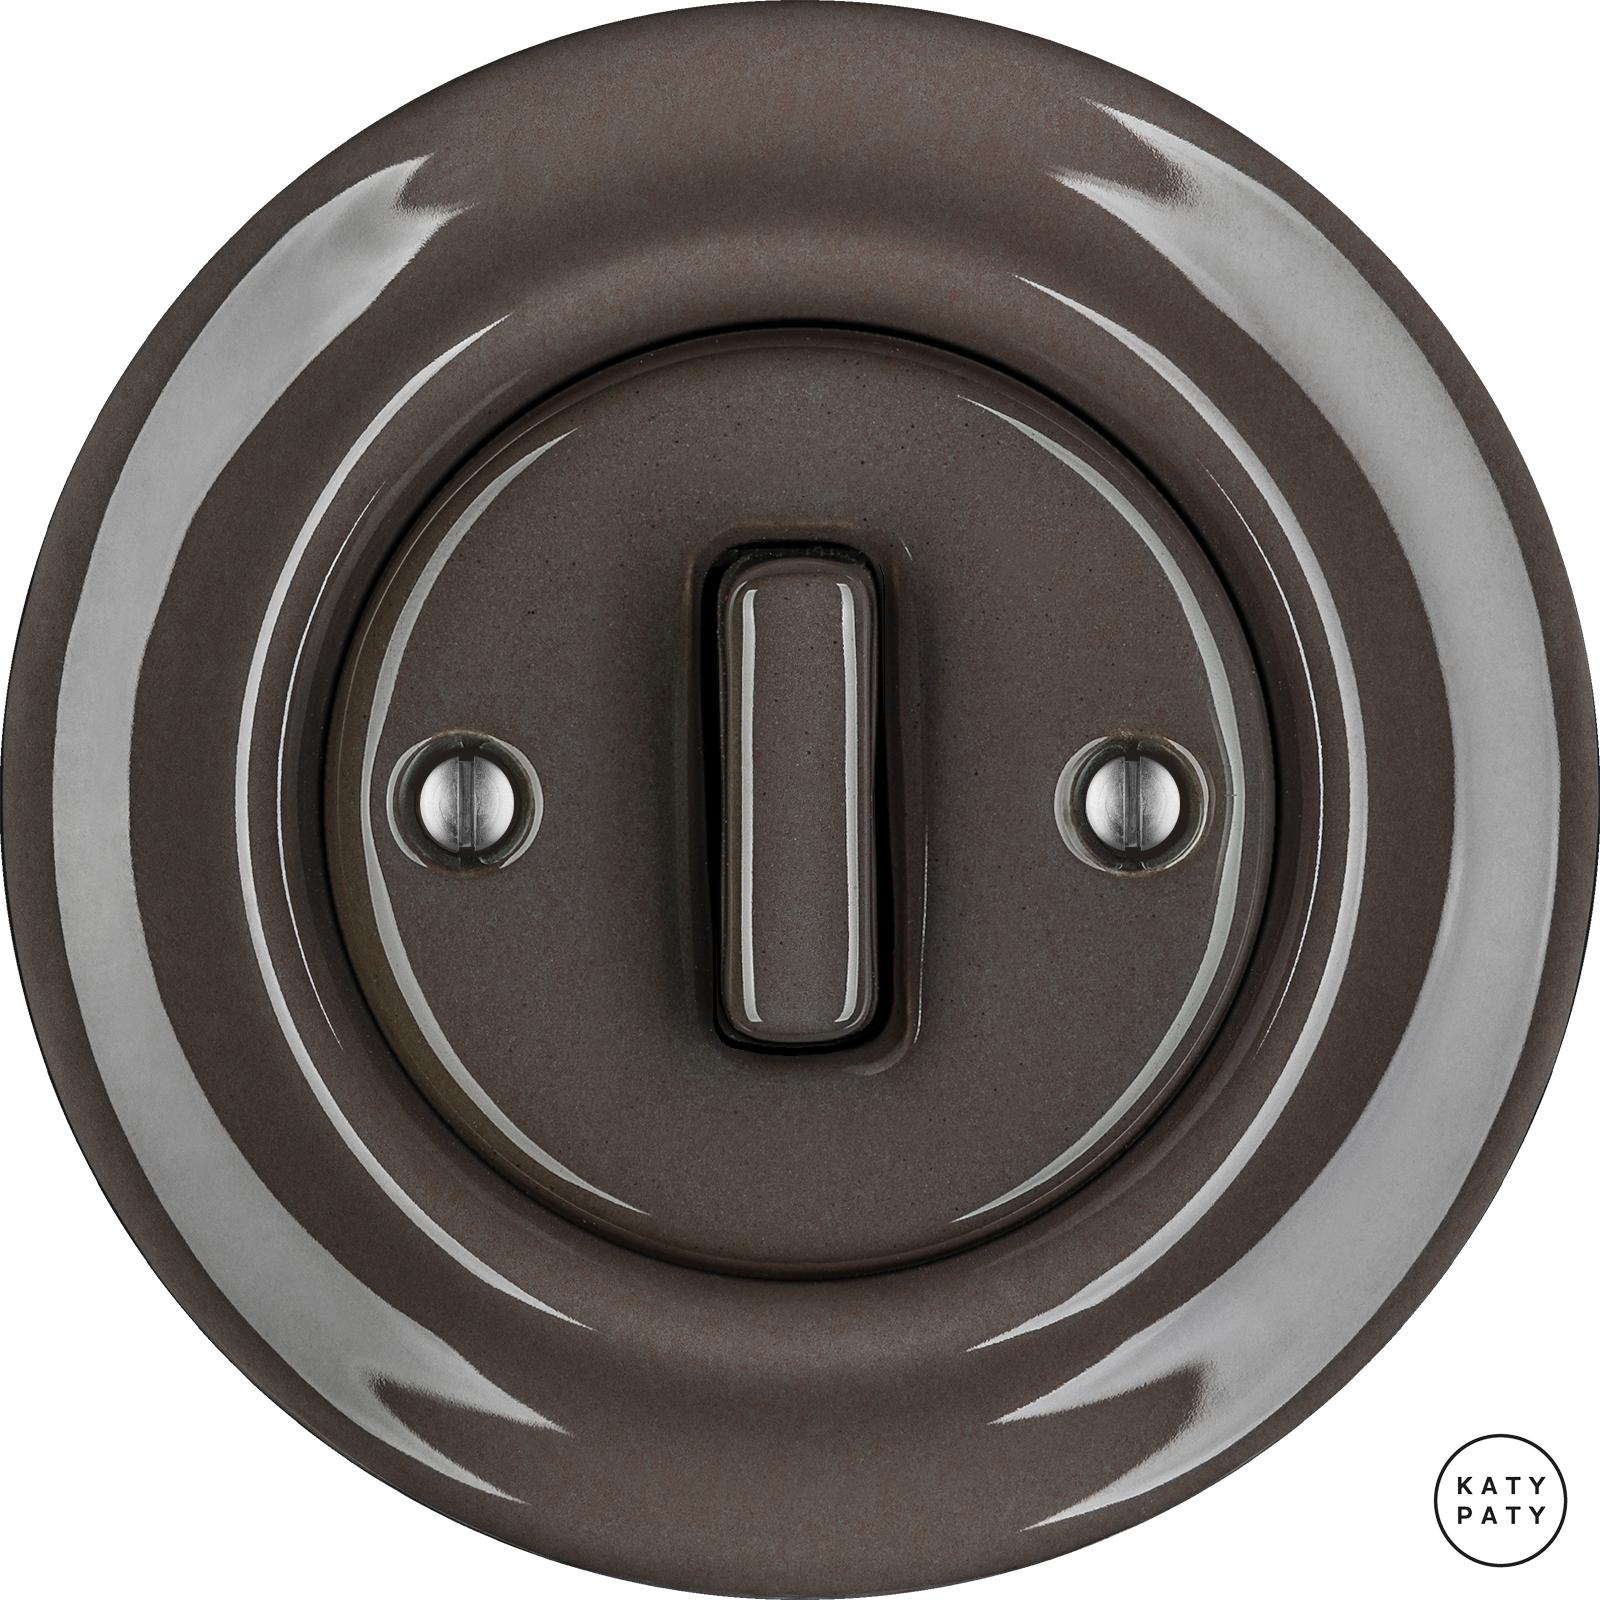 Porcelain switches - 1 gang - SLIM ()  - BRUNETUM | Katy Paty